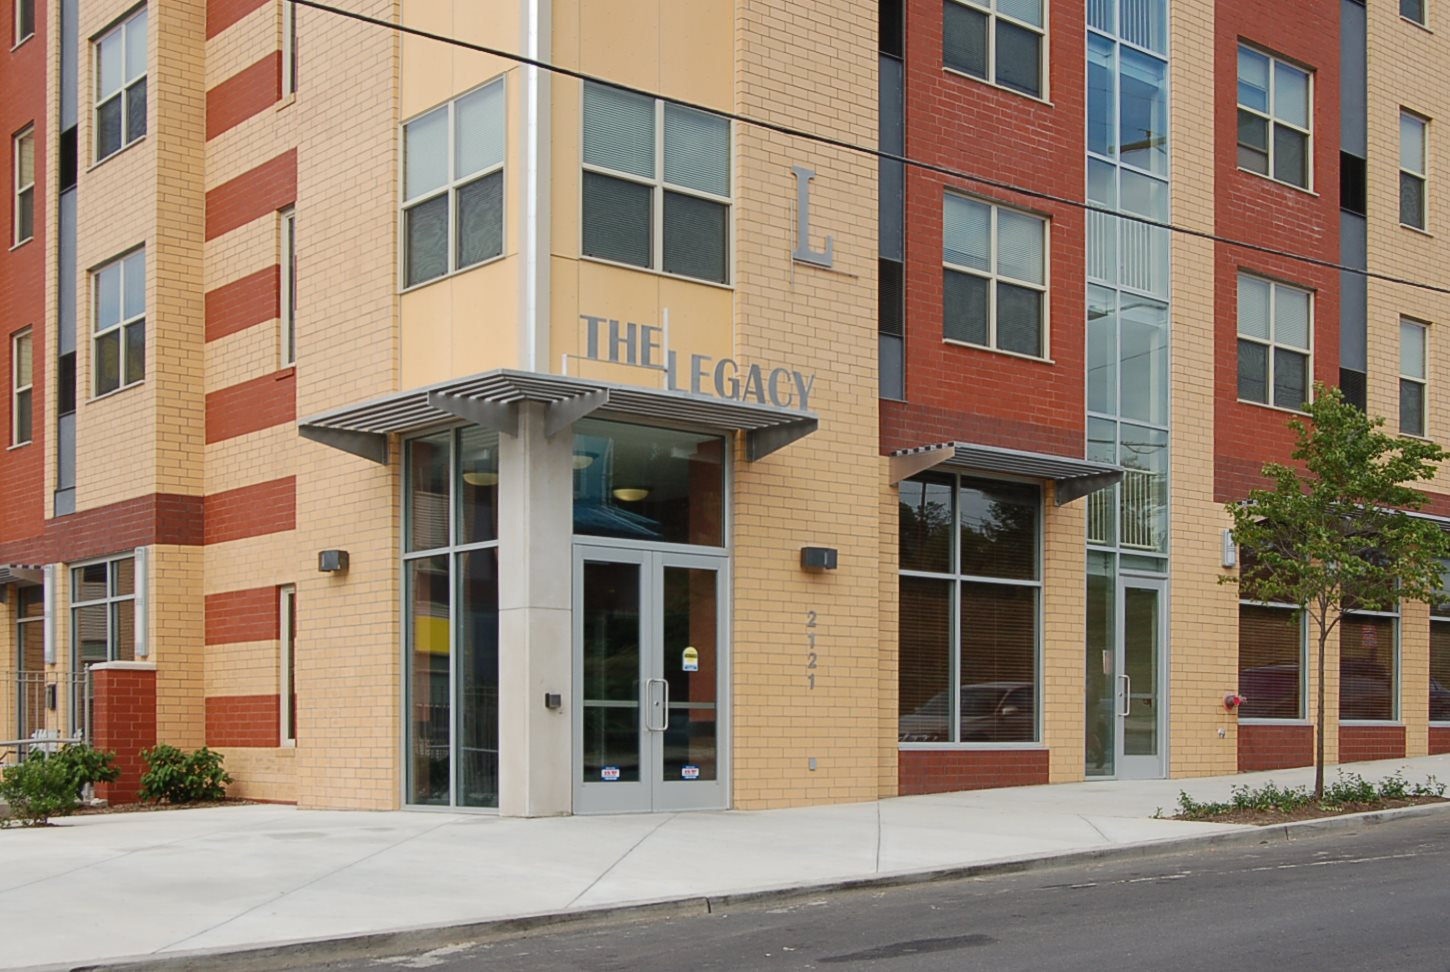 Image of The Legacy Apartments in Pittsburgh, Pennsylvania